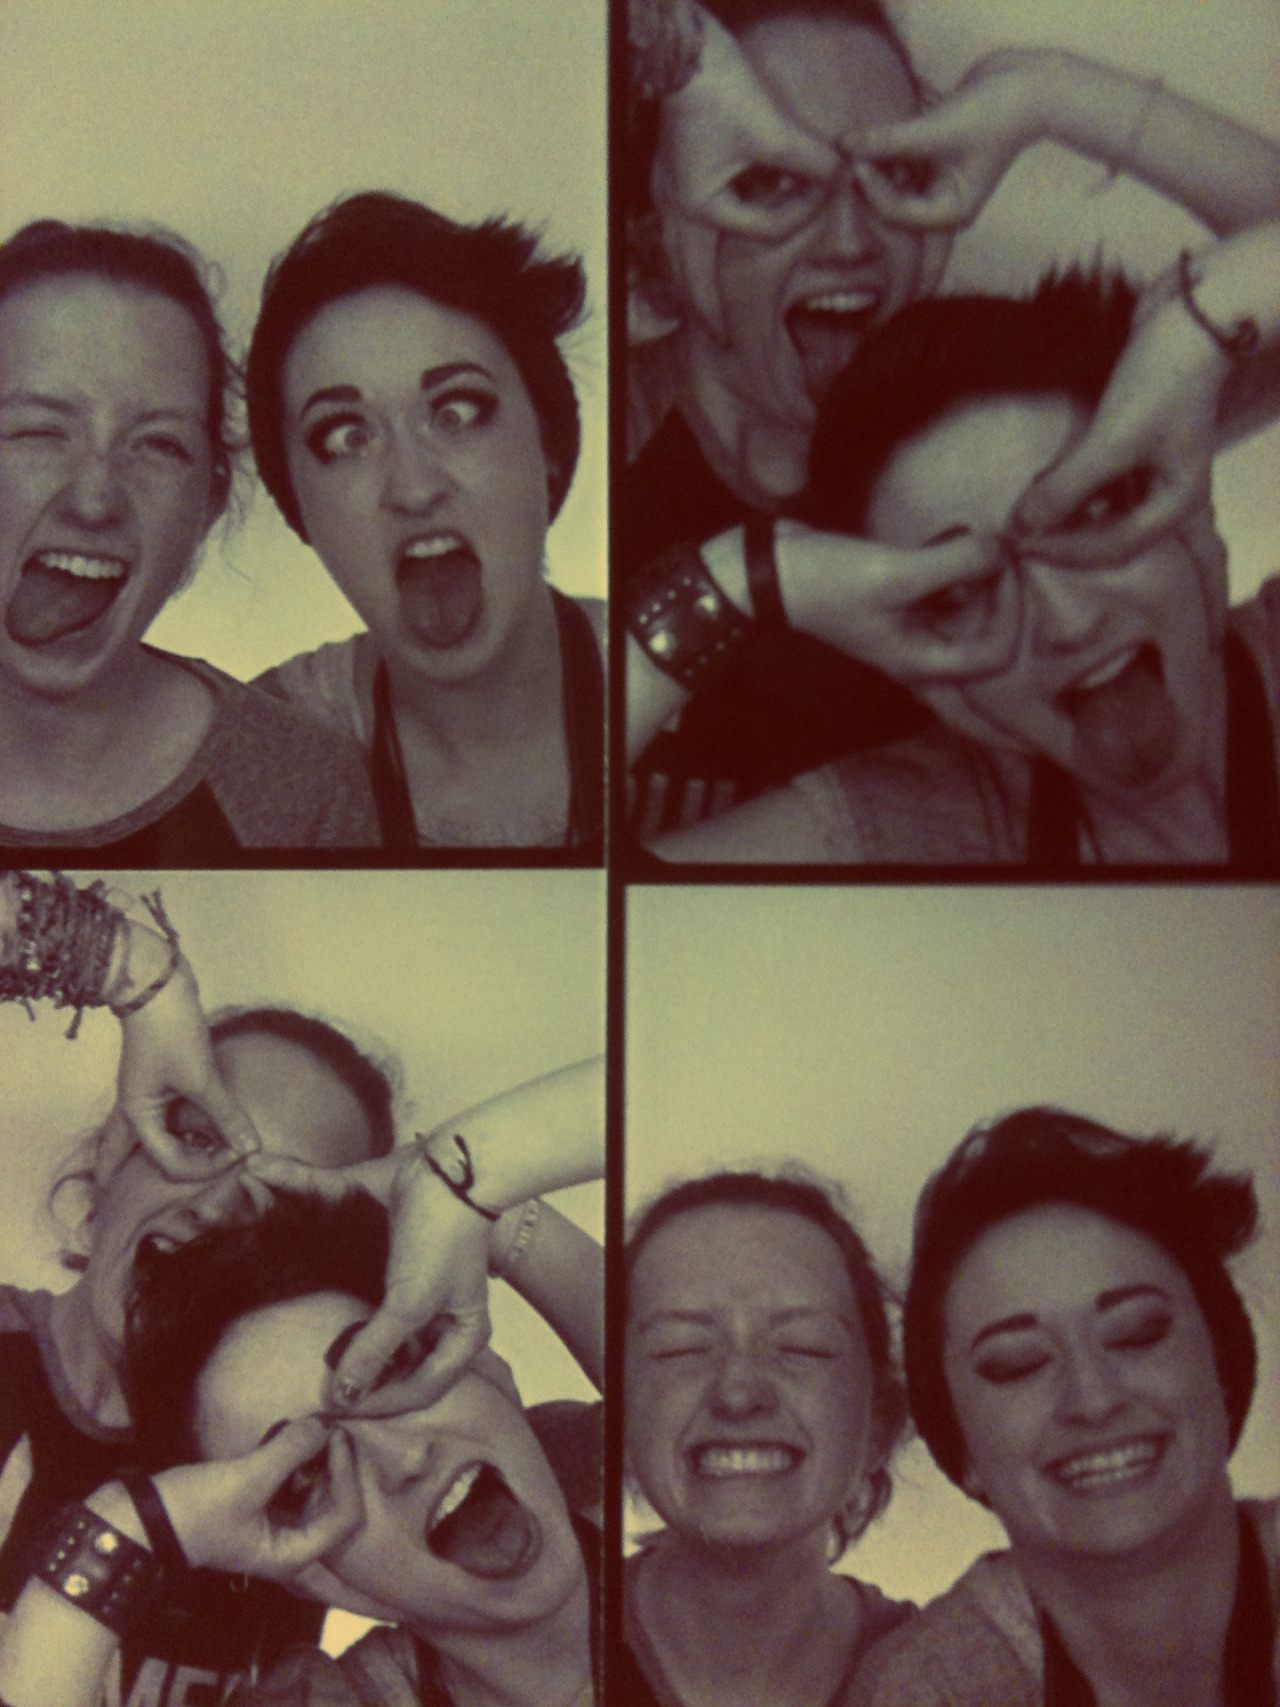 Lena and I in the bodega photo booth